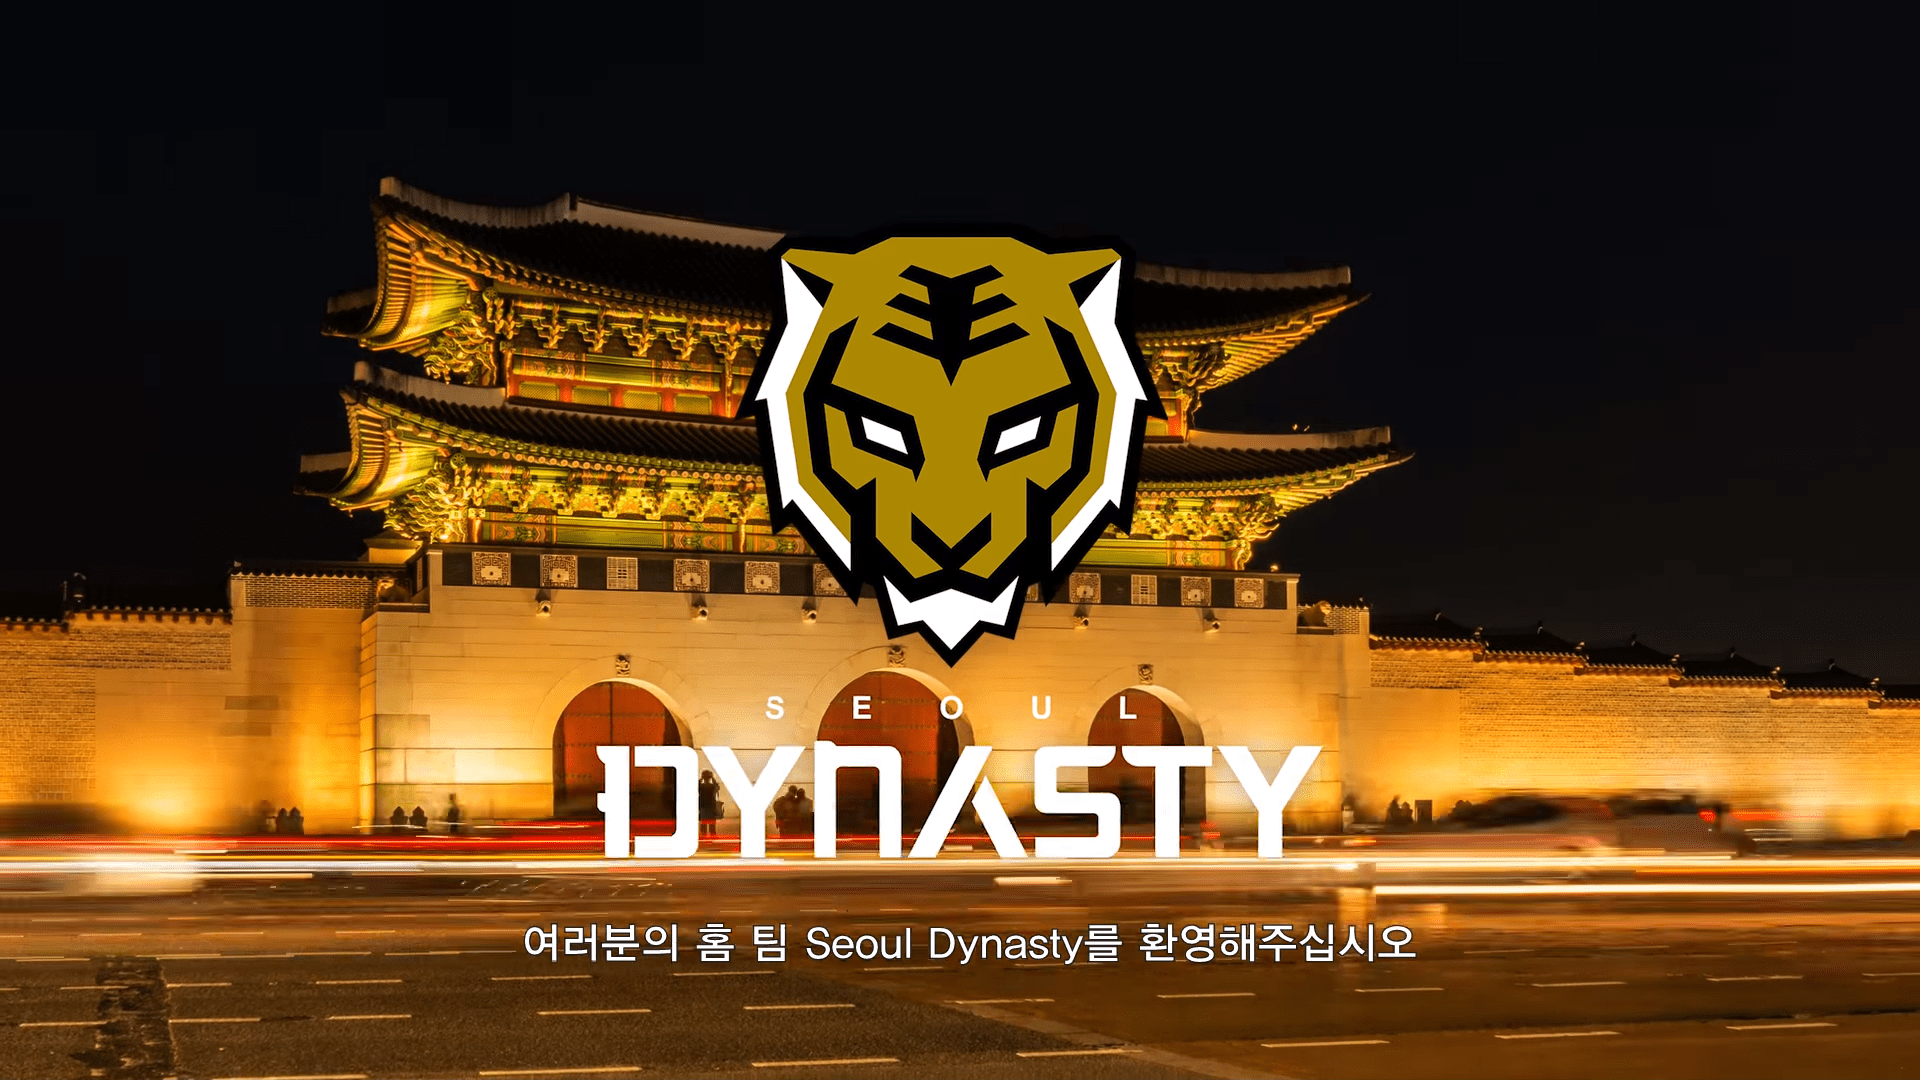 Overwatch League's Seoul Dynasty Announces Roster Update, Likely Blew Signing Budget On Profit and Gesture Signing